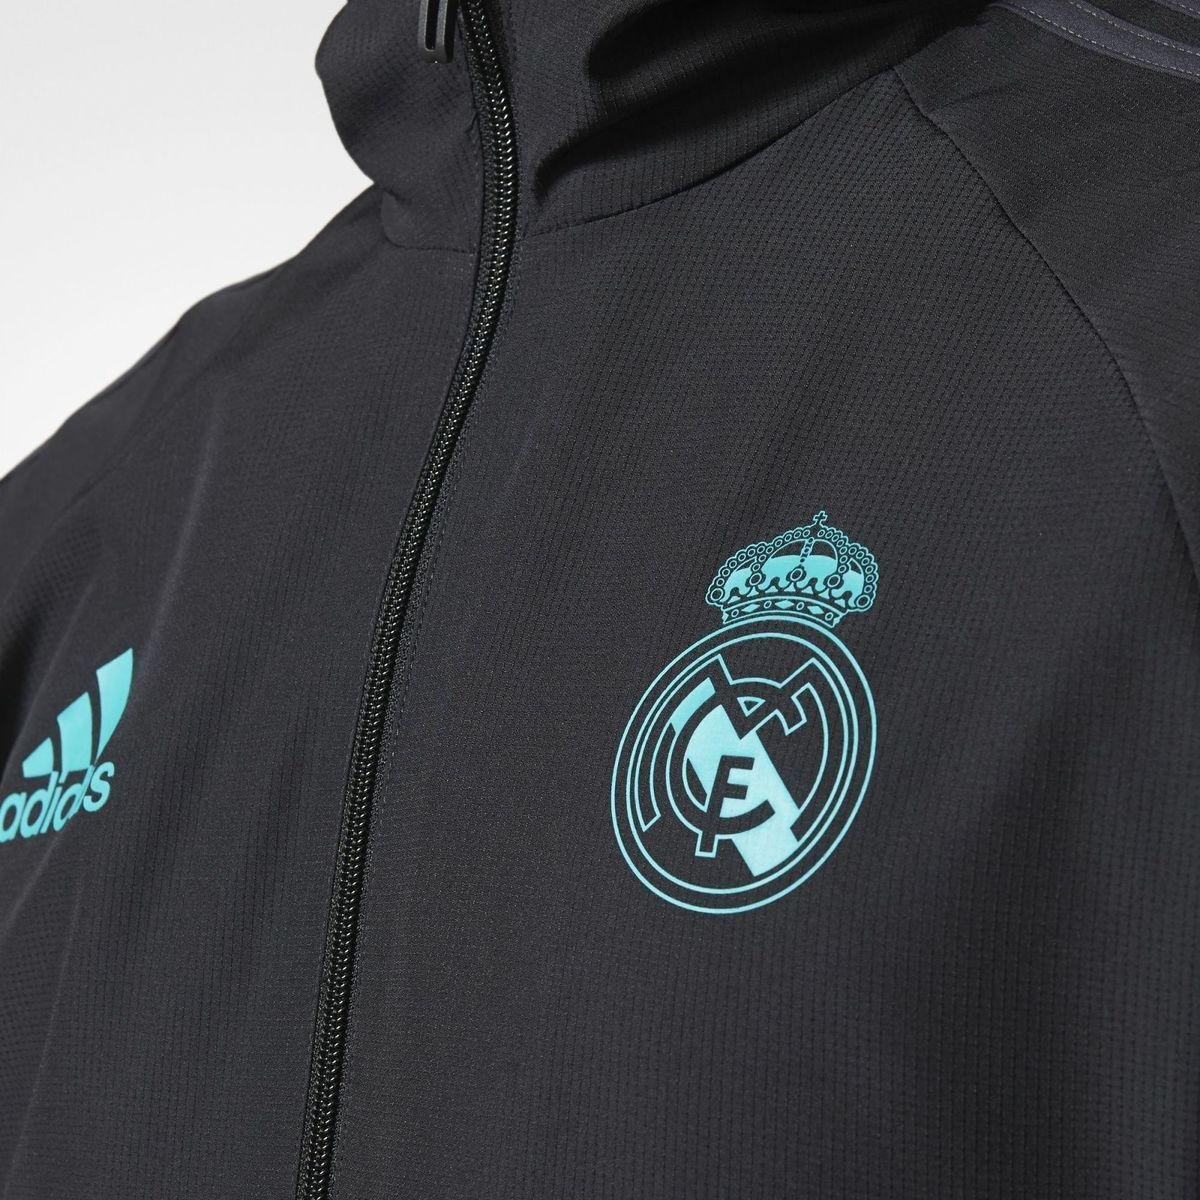 Adidas jaket Real Madrid Presentation Jacket - BQ7867 - hitam - 4 .